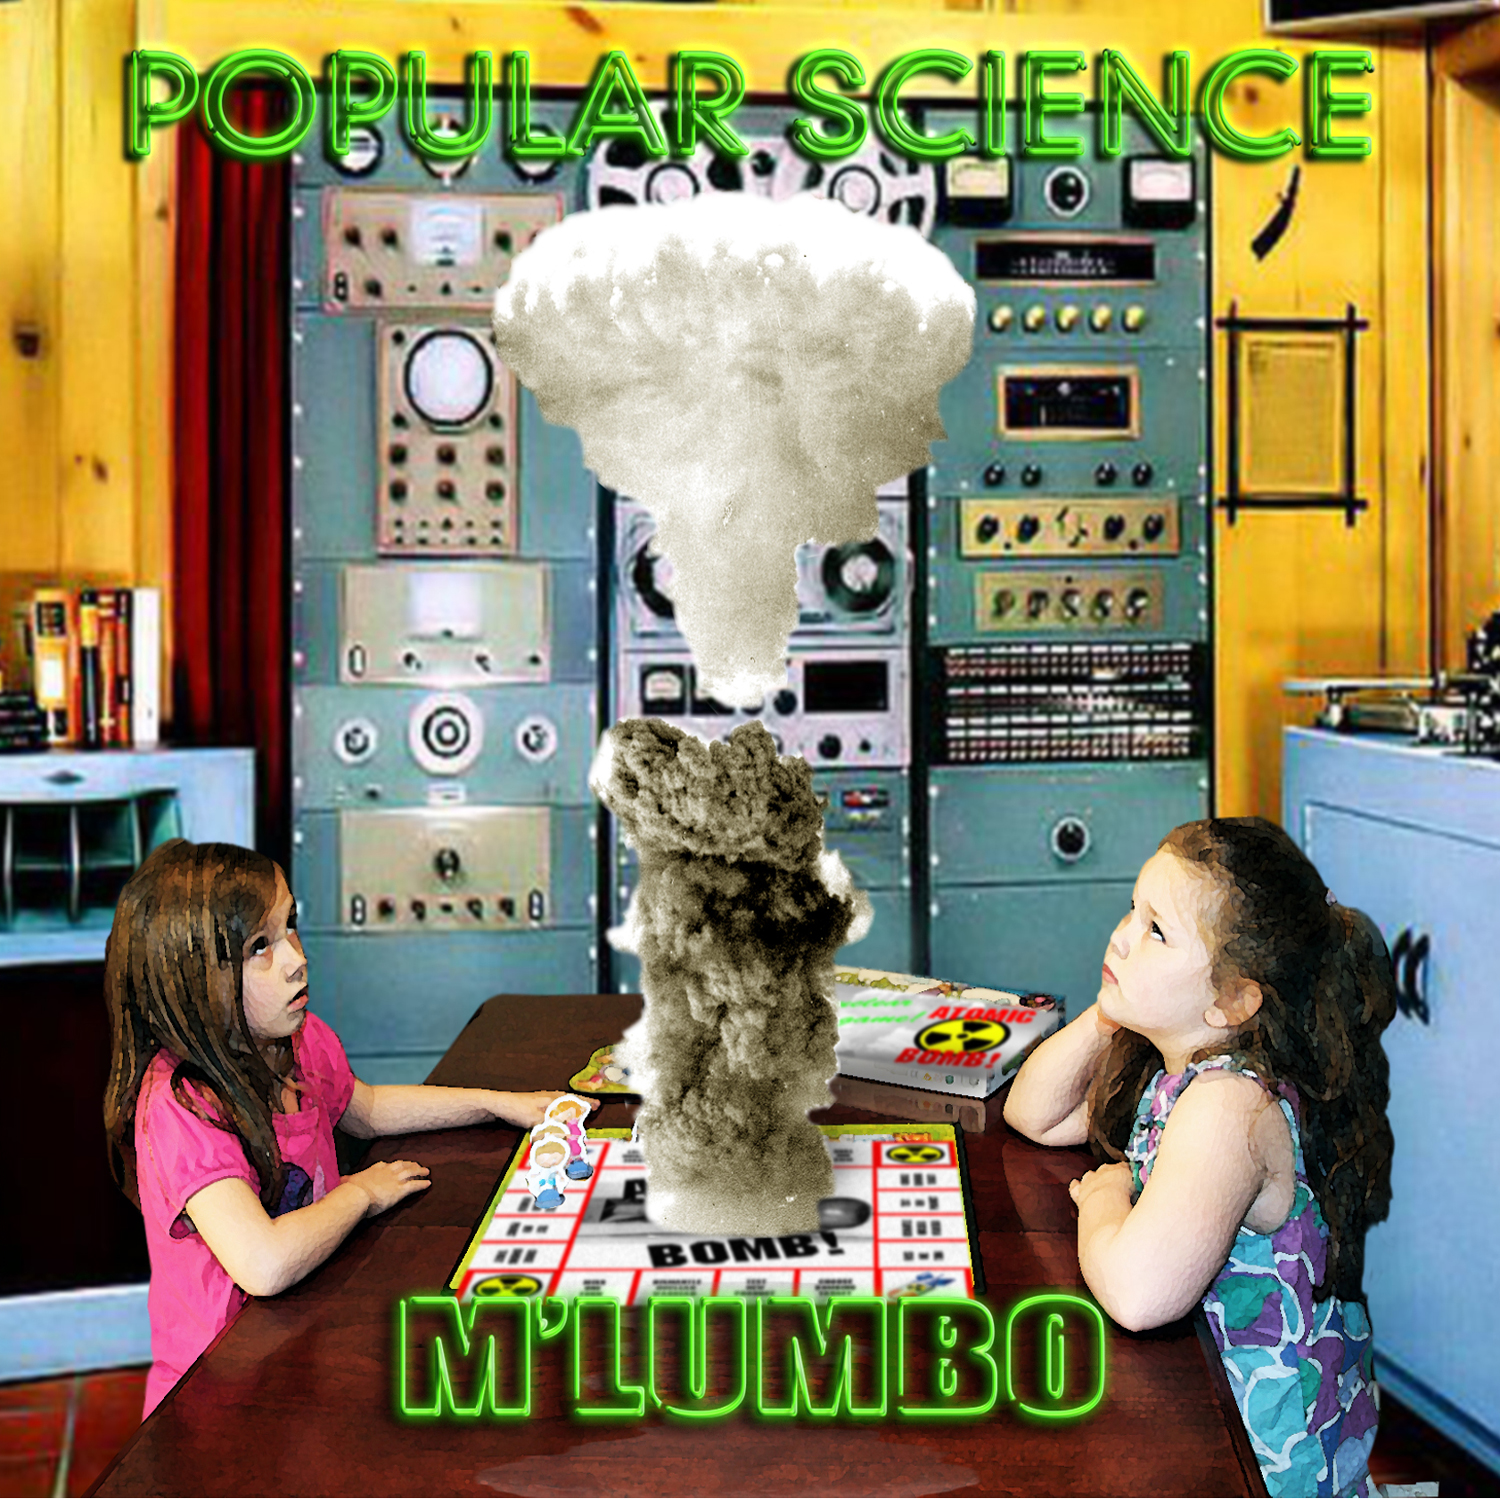 M'lumbo Popular Science